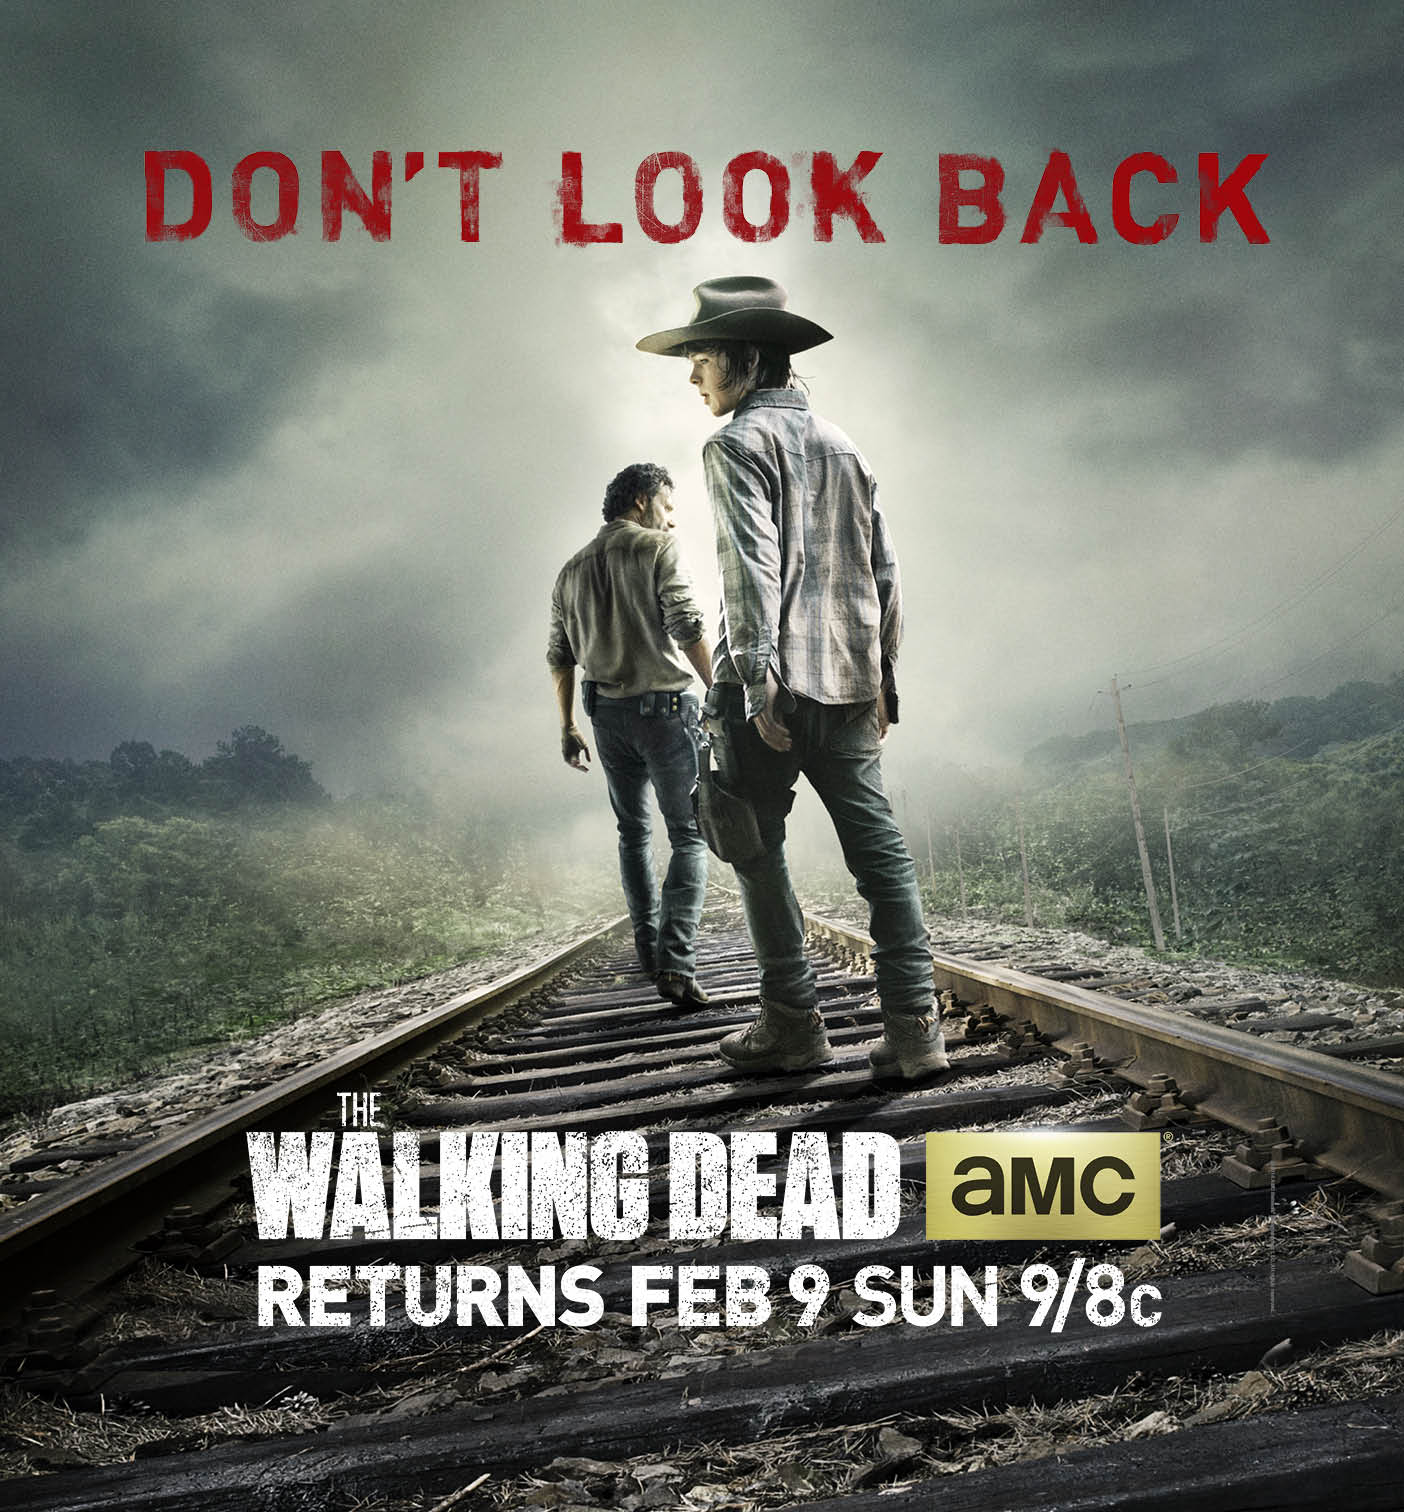 Mid Season Trailer for The Walking Dead Released